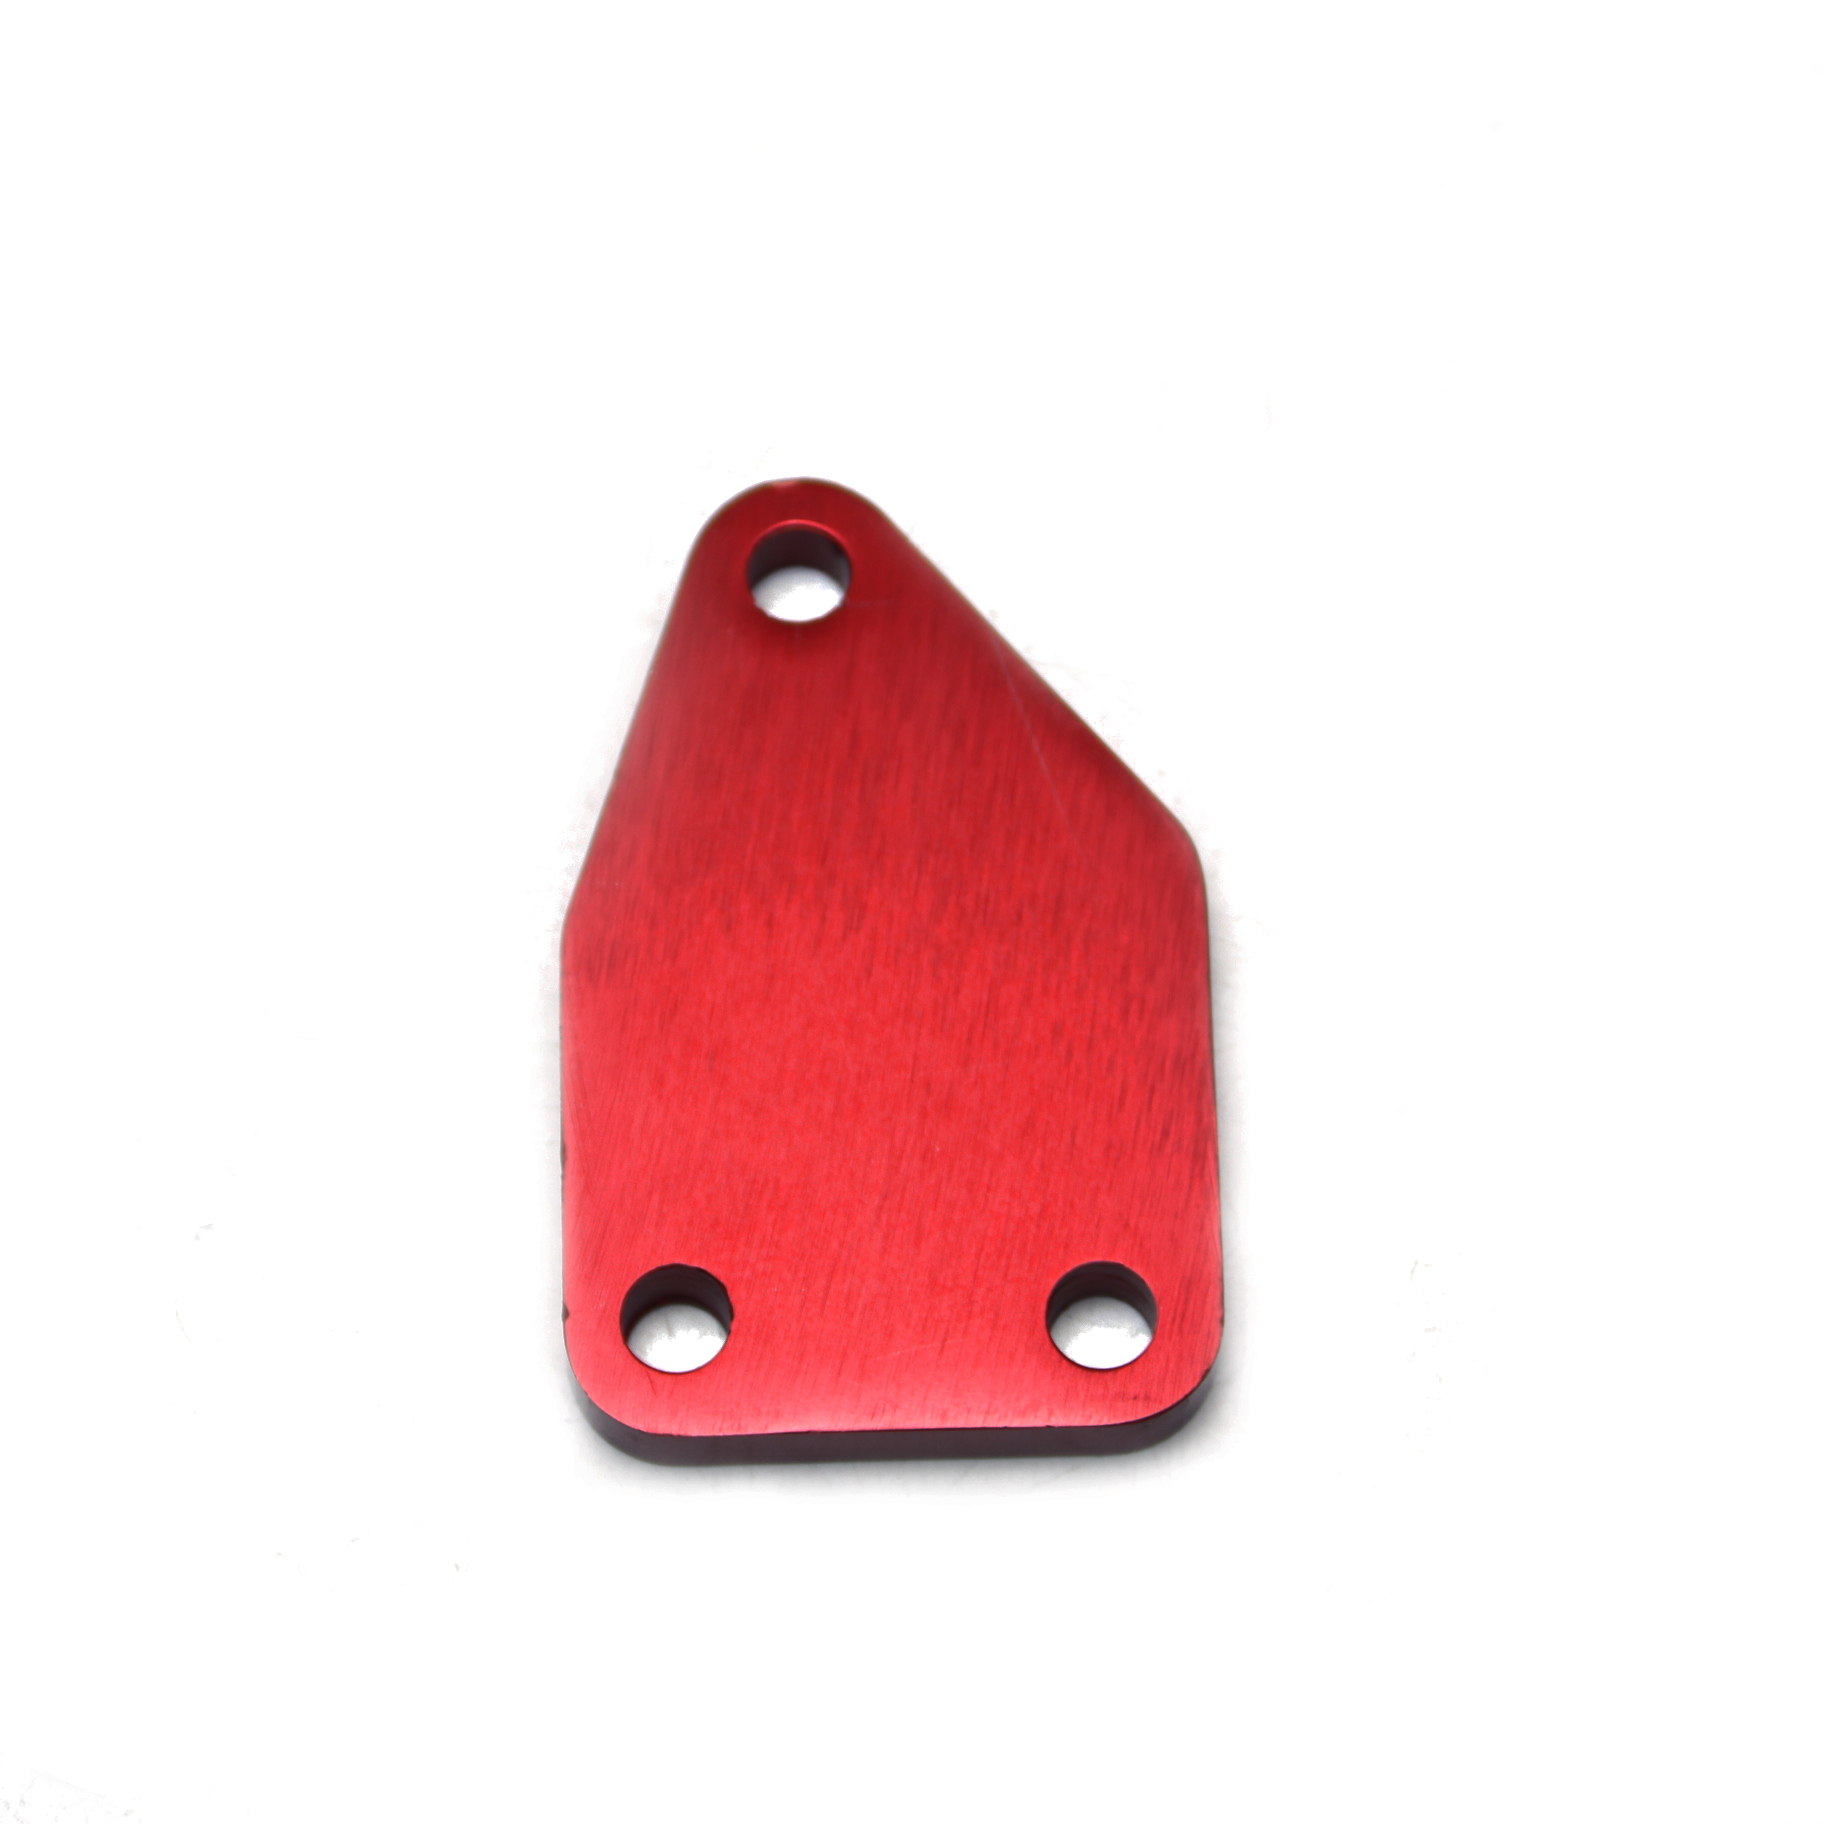 Automotive Exhaust Valve Blanks For New D-MAX/MU-X Modified Turbocharged Diesel Engines